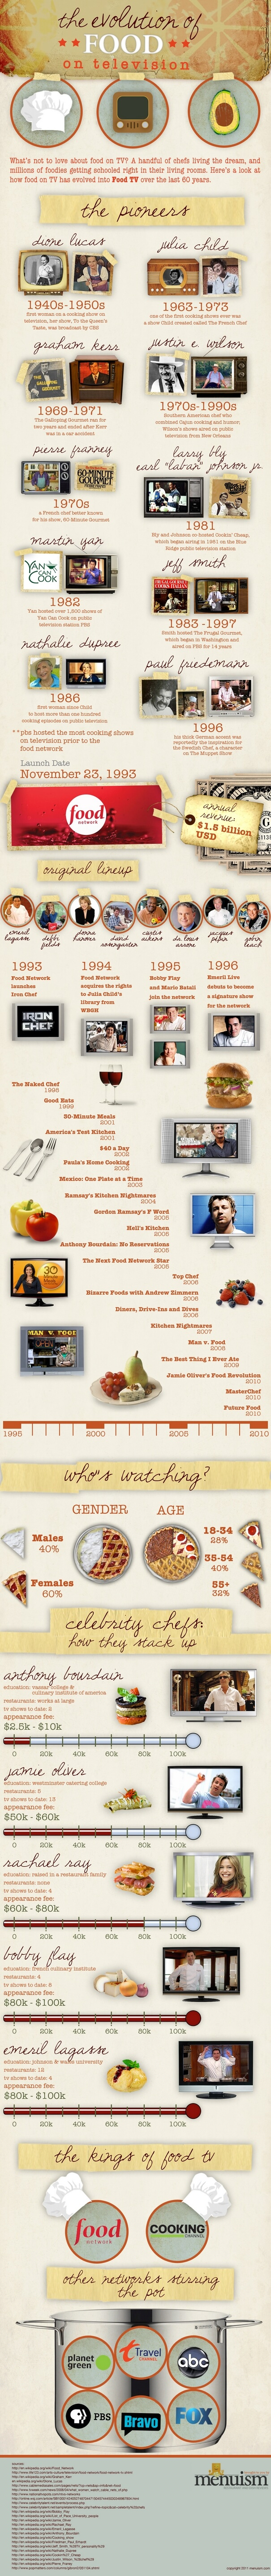 menuism evolution of food tv infographic